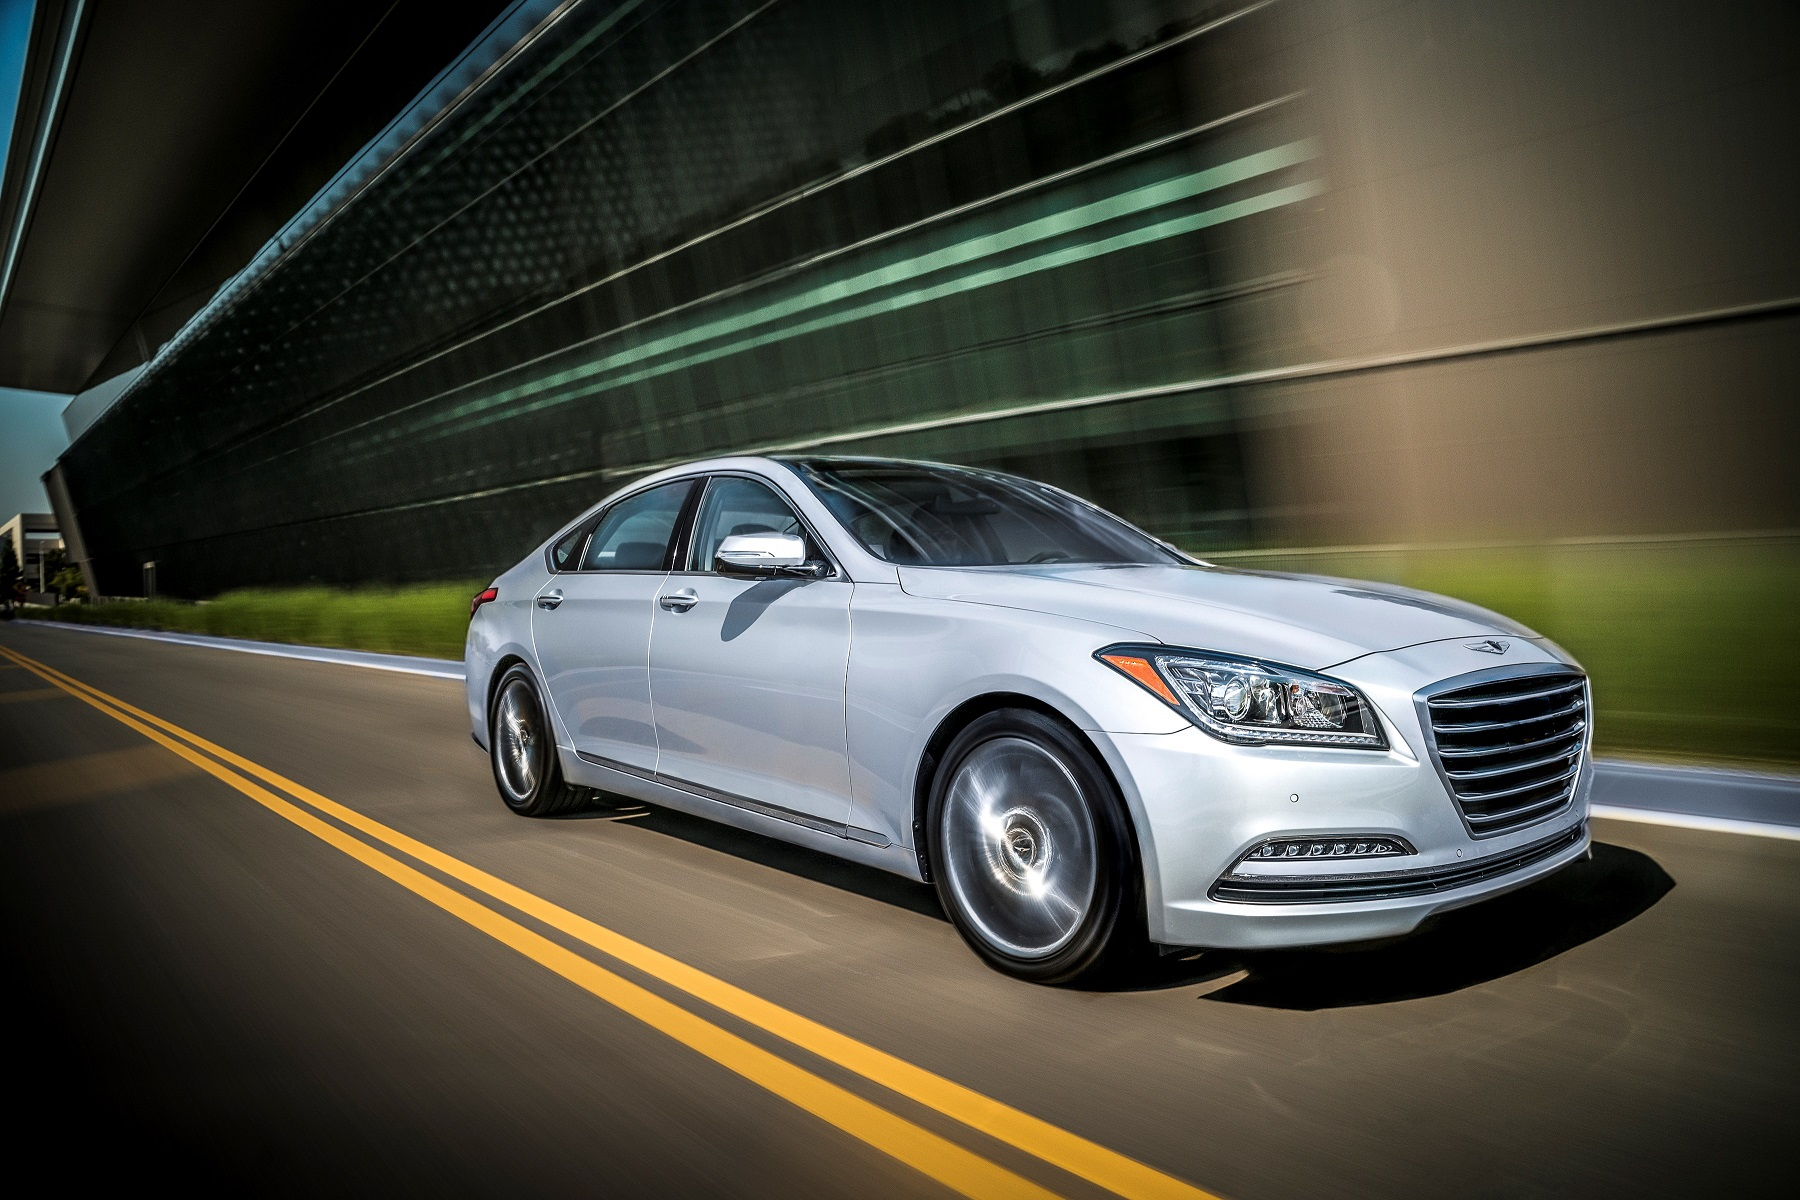 Manufacturer photo: The 2017 Genesis G80 delivers an unprecedented combination of refined performance, human-focused technology and segment-leading safety features